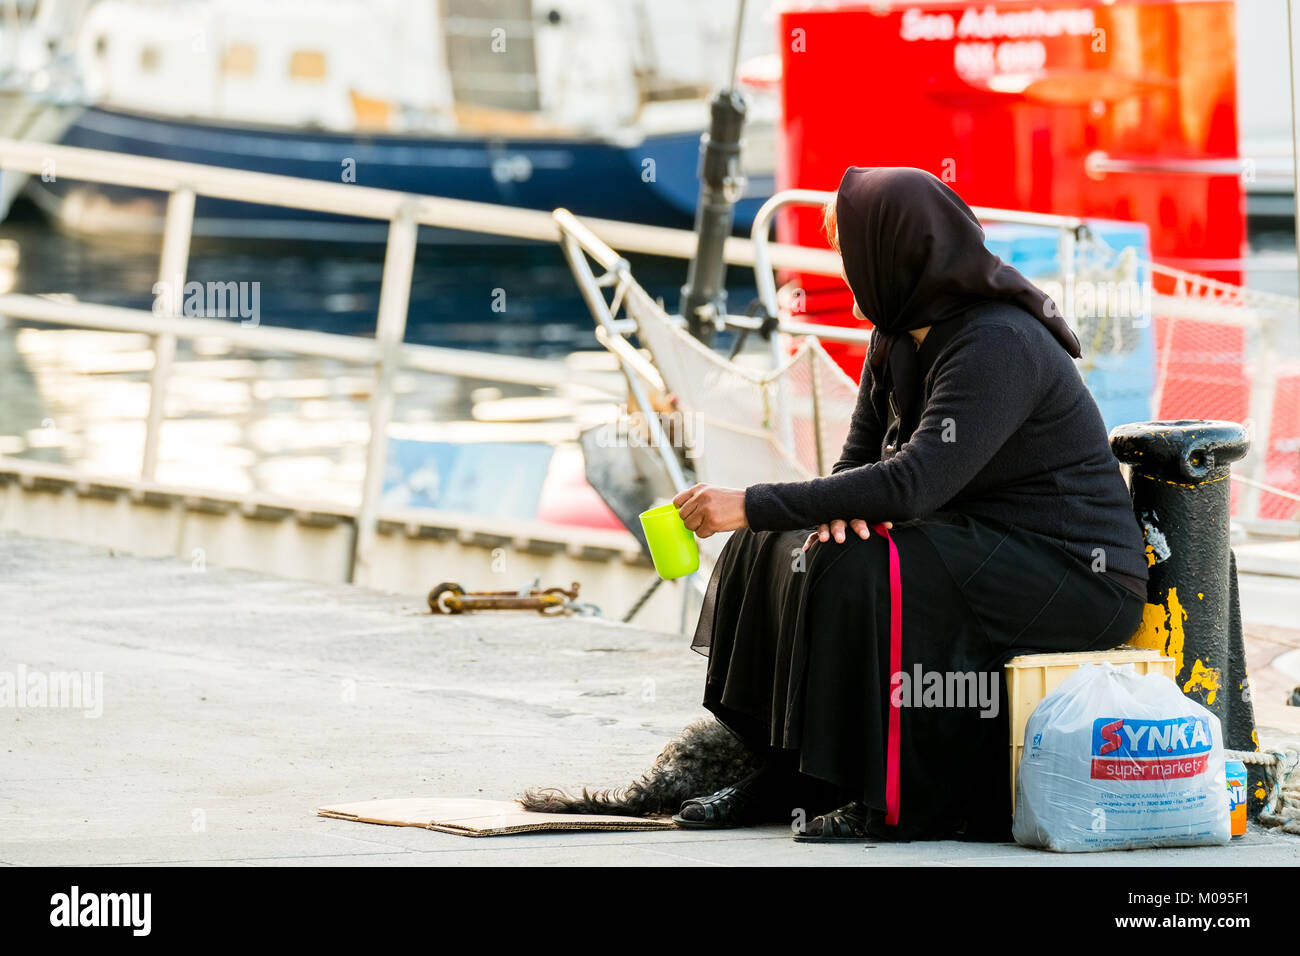 beggar woman in black robe in port of Chania, poverty, Europe, Crete, Greece, Chania, Europe, Crete, Greece, GR, Stock Photo